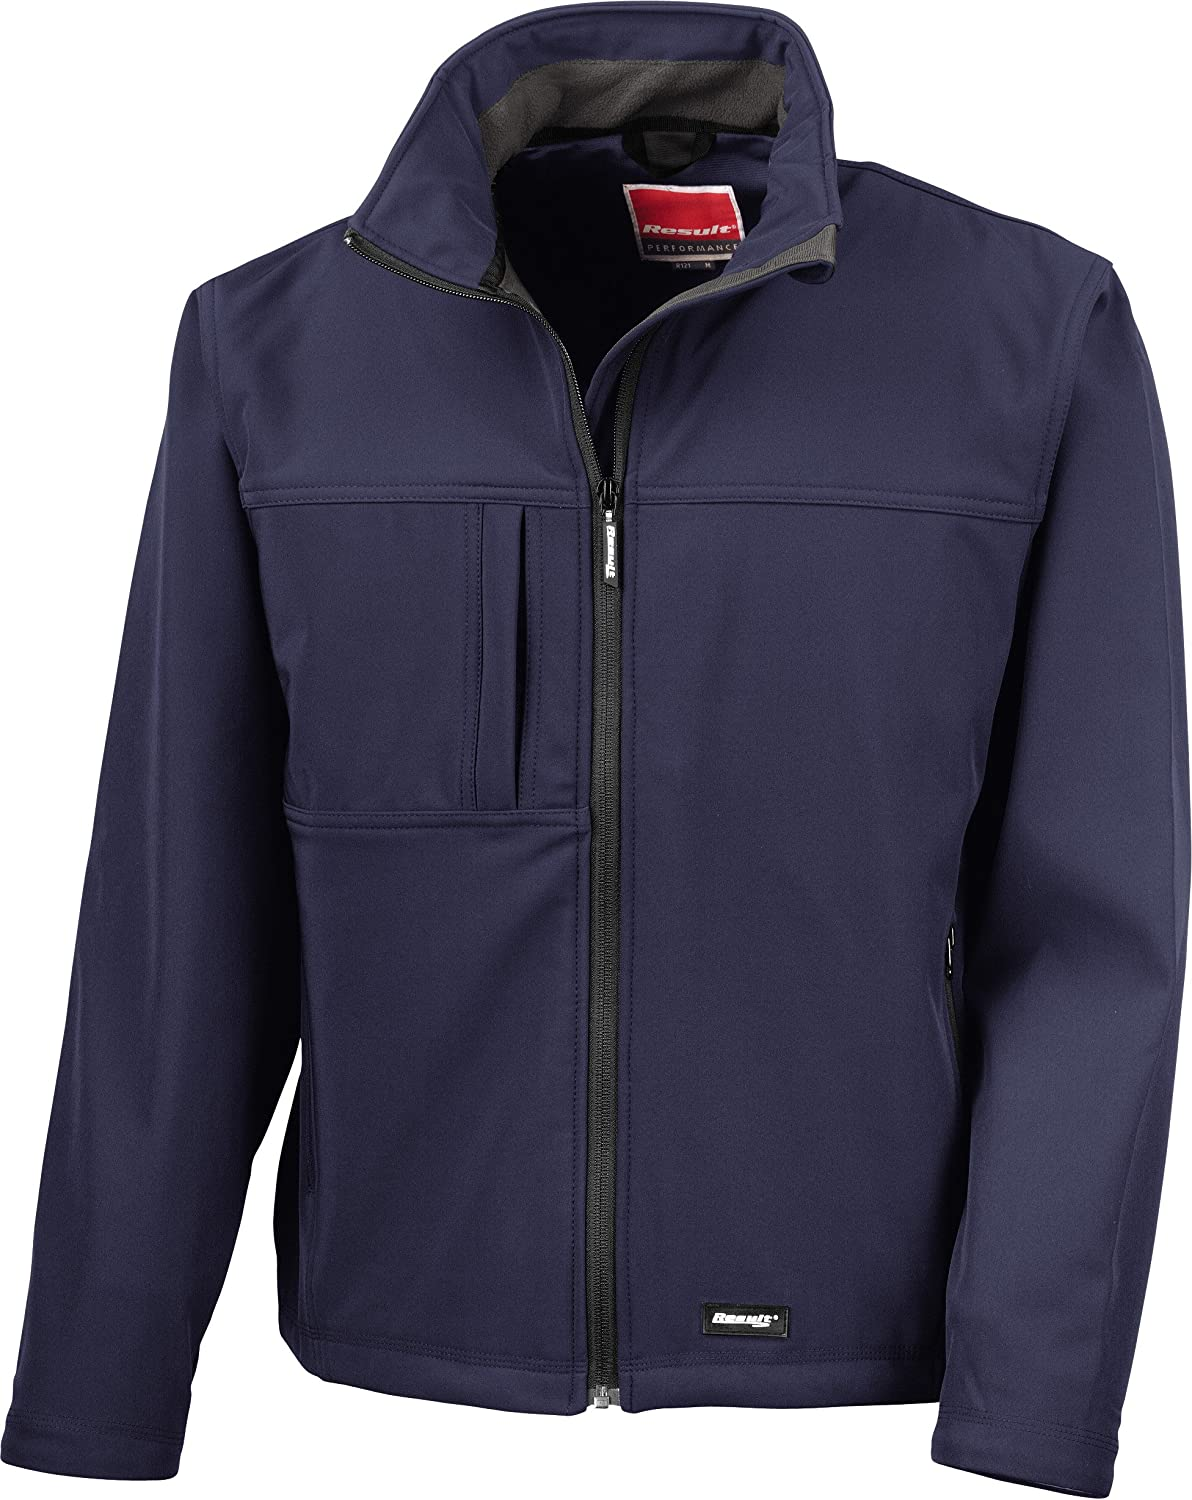 (4X-Large, Navy) - Result R121a Classic Soft Shell Jacket